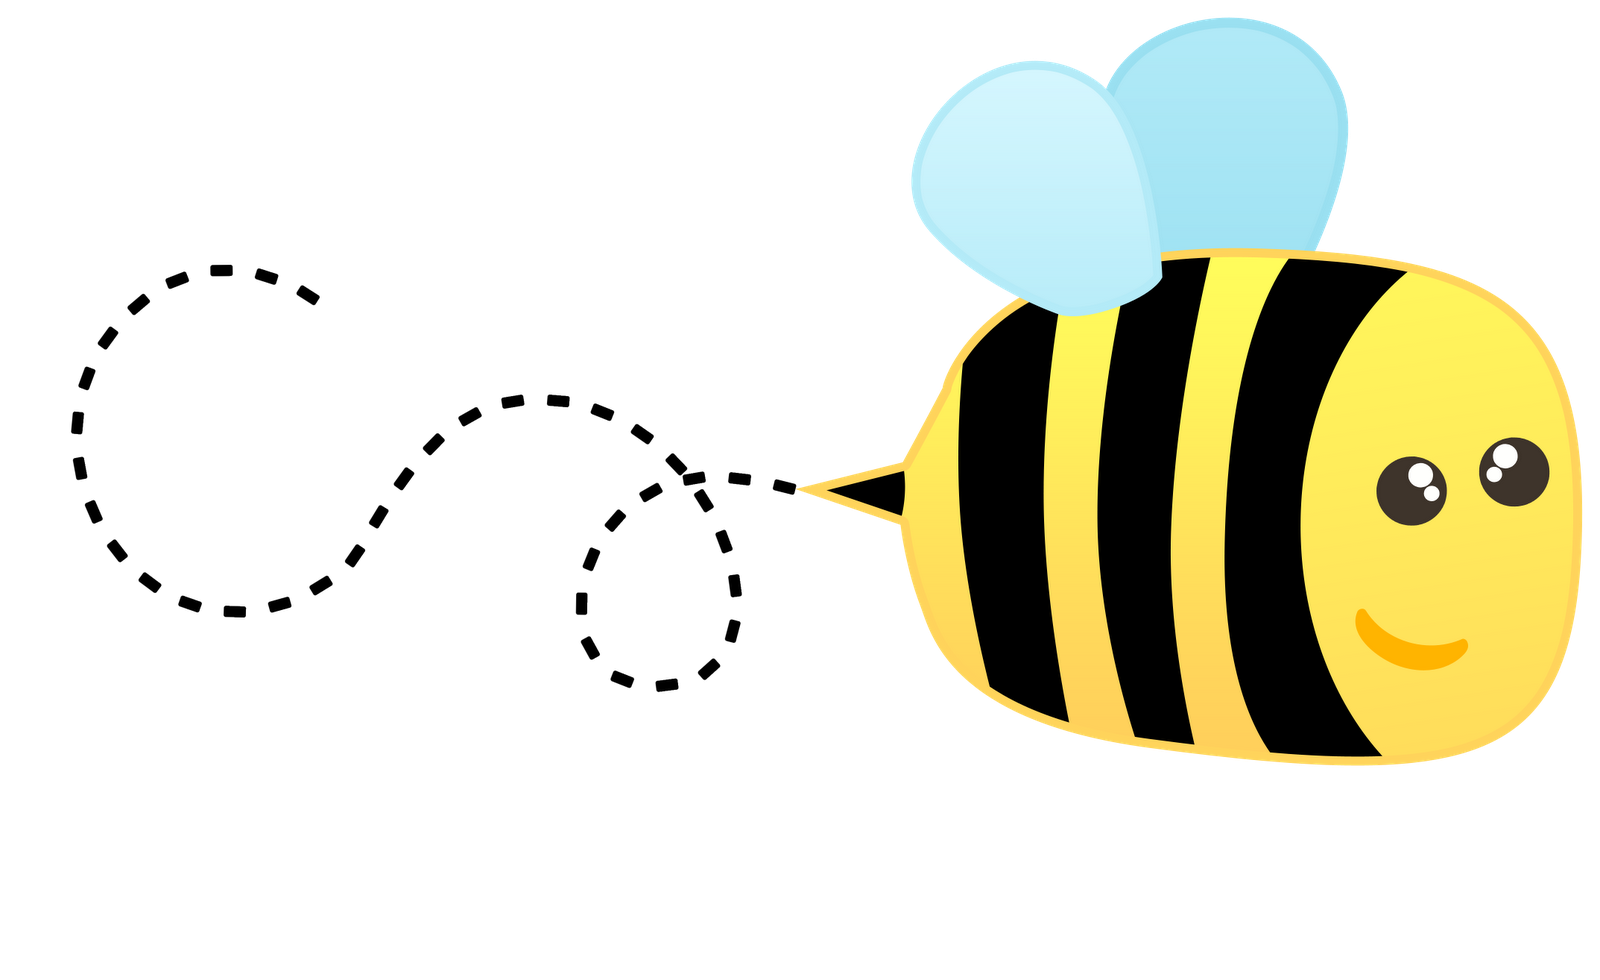 Spelling bee clipart black and white free 2